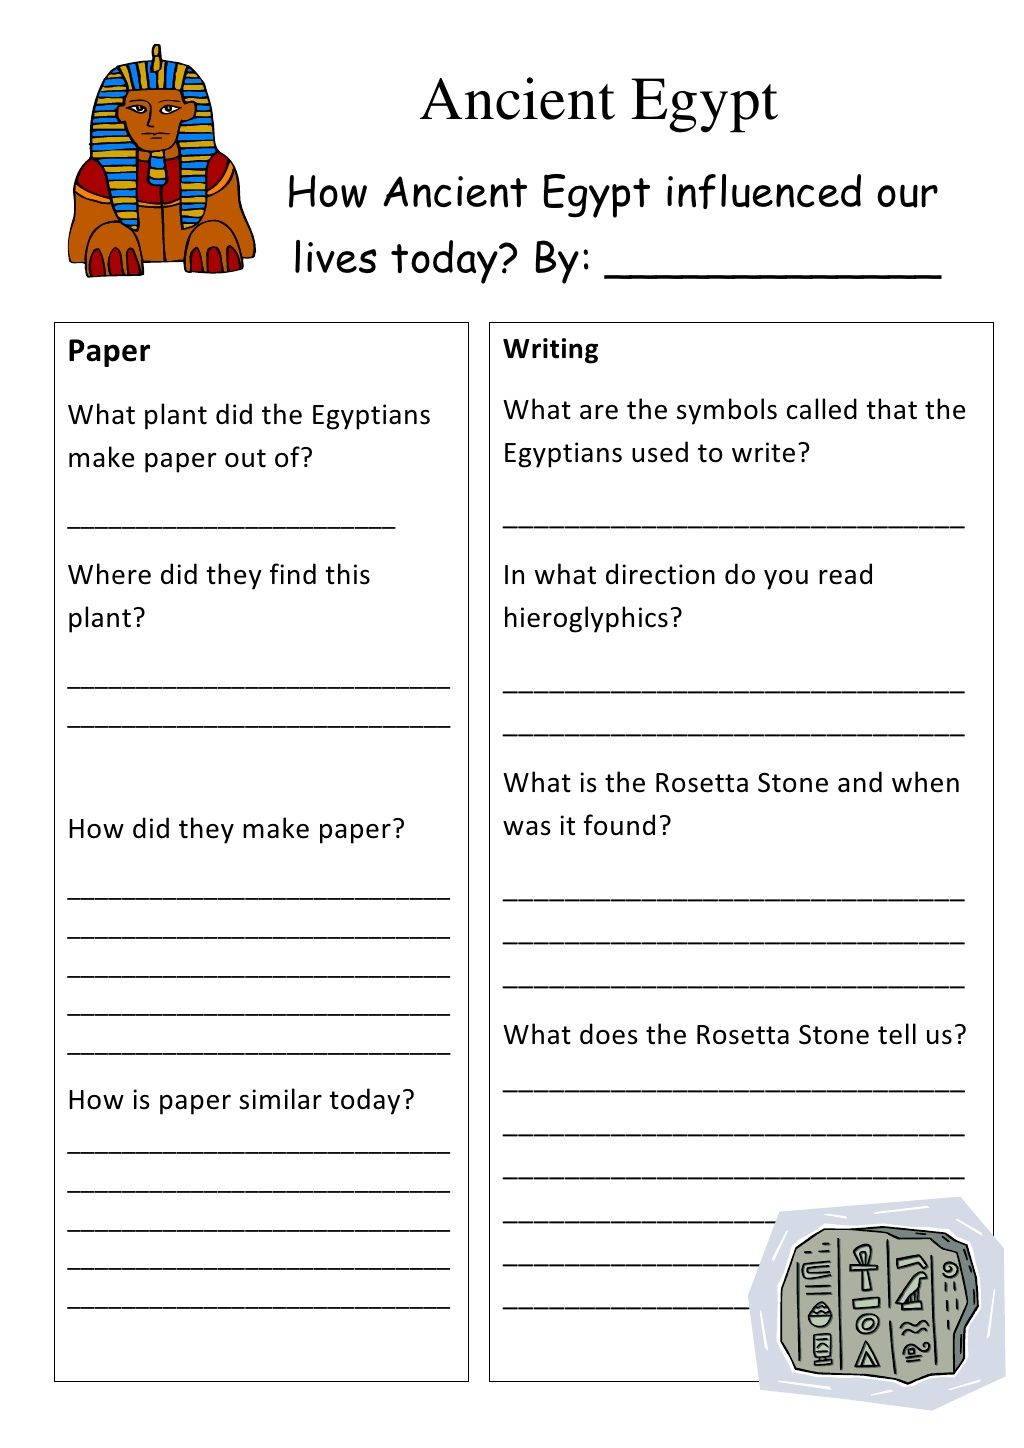 ancient-egypt-worksheet by 7GChaffey via Slideshare  GEEK TEACHER  math worksheets, worksheets, printable worksheets, multiplication, and learning Nile River Worksheets 1448 x 1024